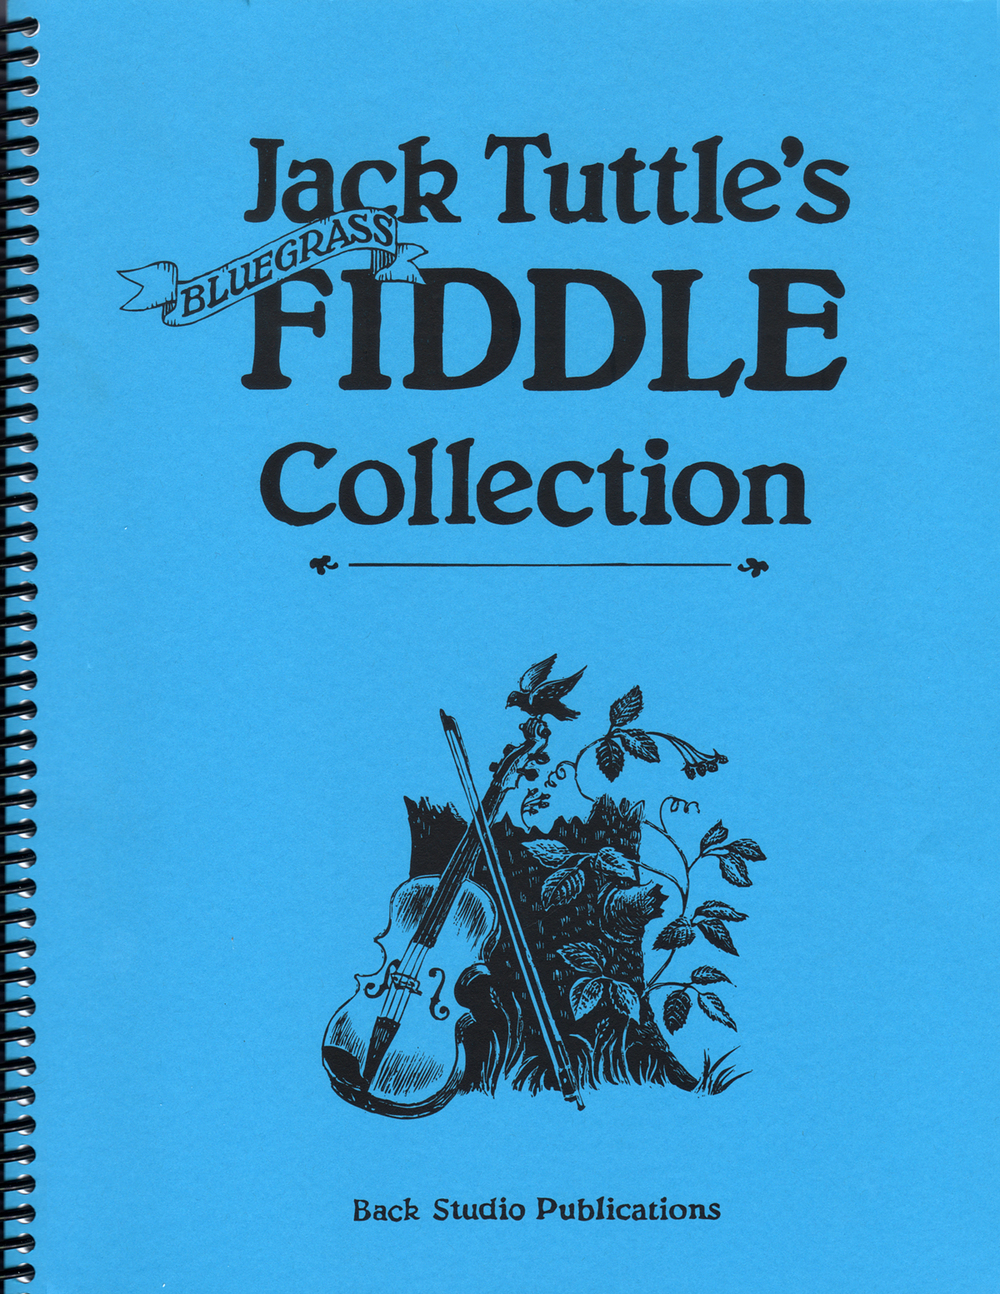 Jack Tuttle's Bluegrass Fiddle Collection